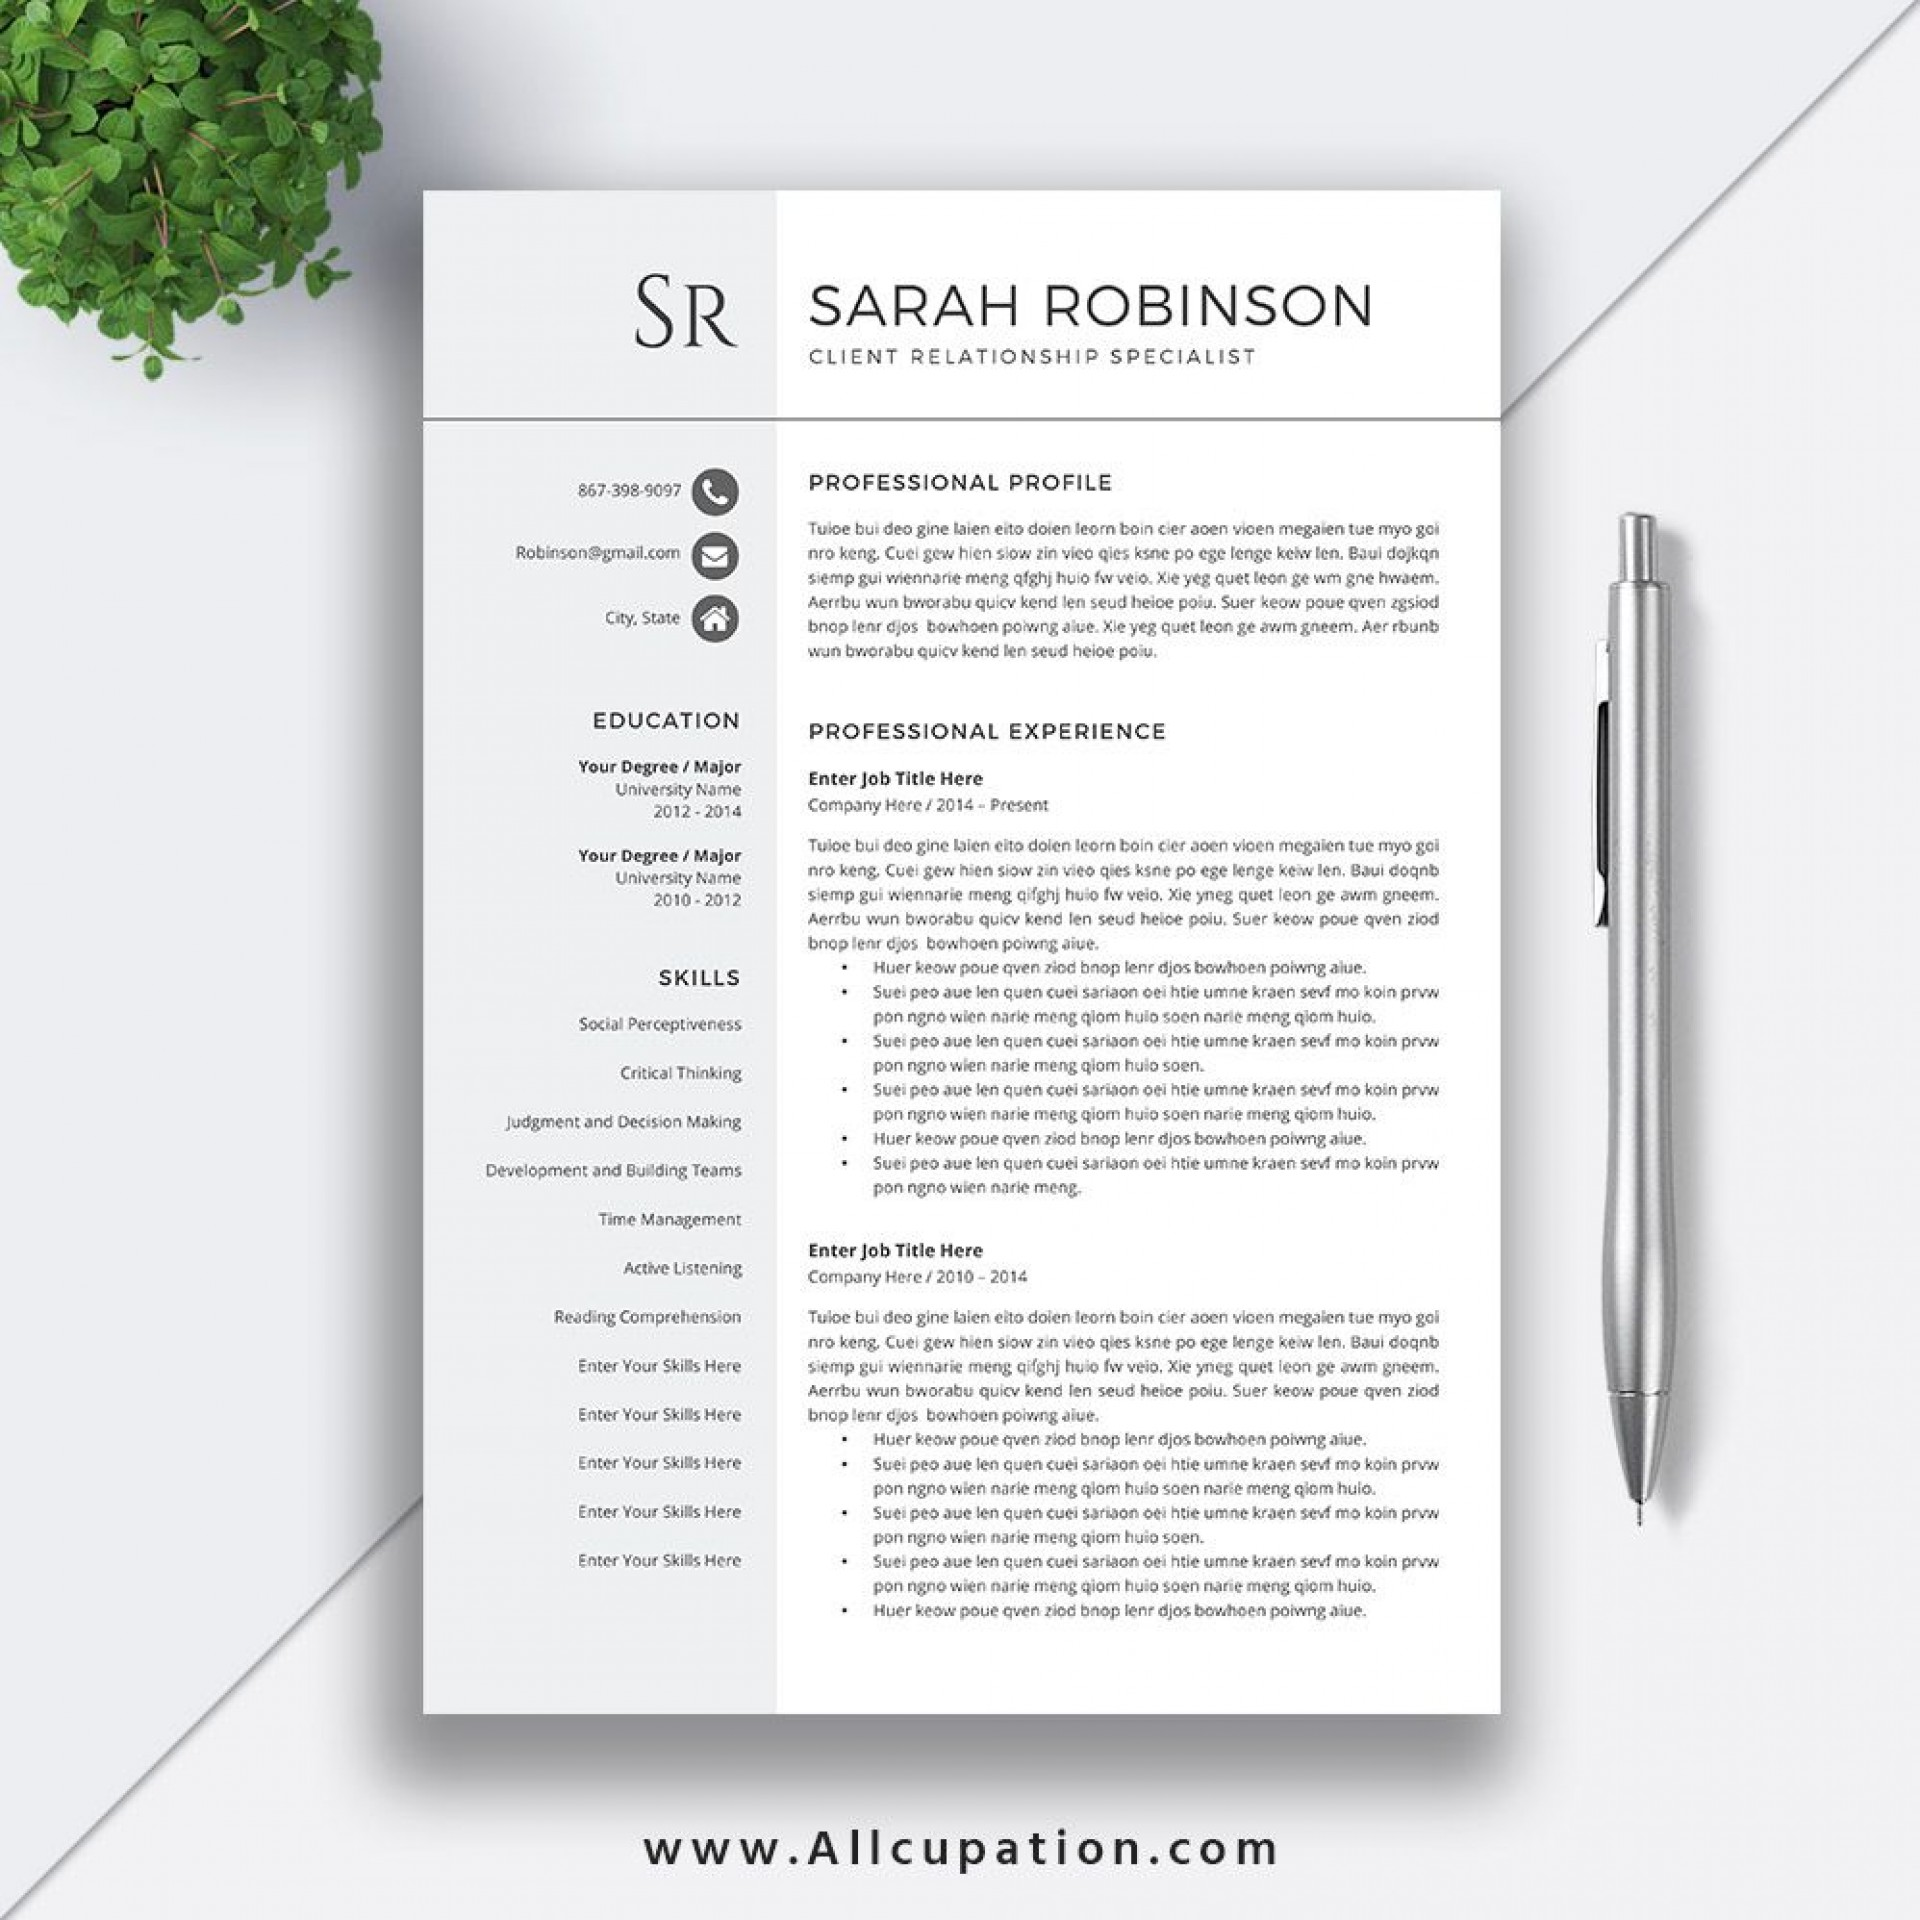 003 Frightening Best Resume Template 2016 Highest Quality 1920